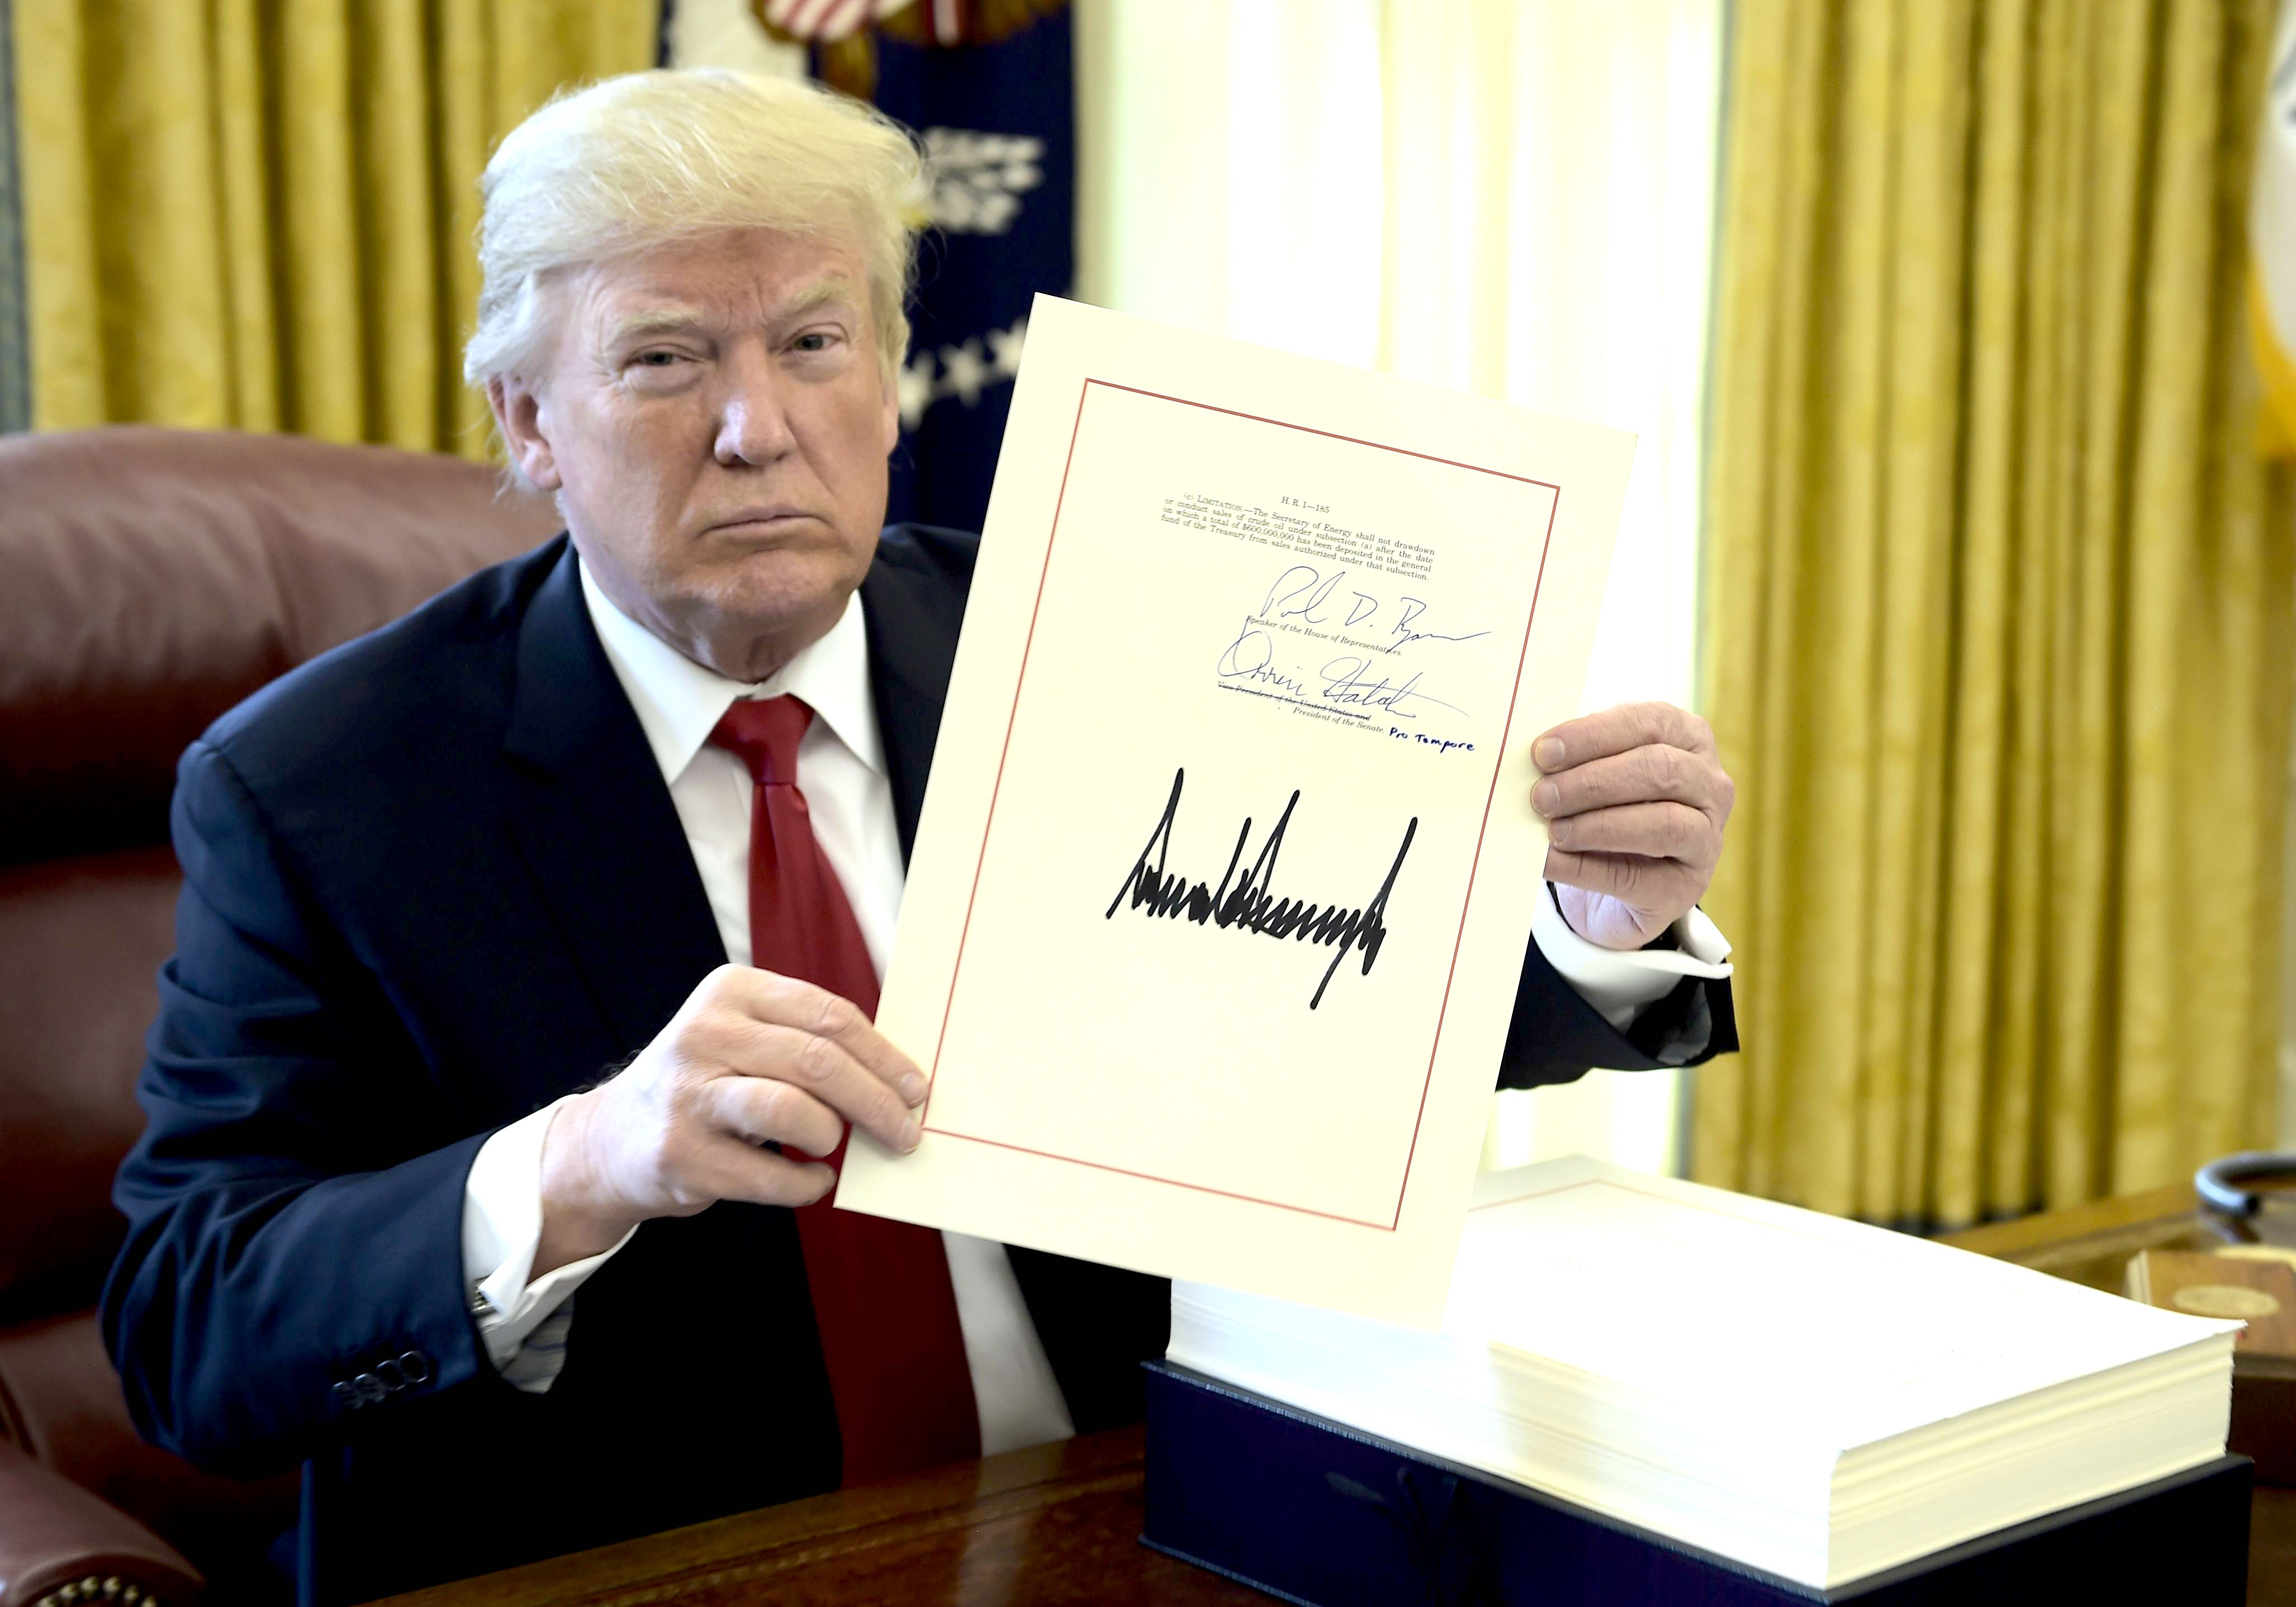 President Donald Trump during the signing event for the Tax Cut and Reform  Bill, in the Oval Office at the White House in Washington on Dec. 22, 2017.